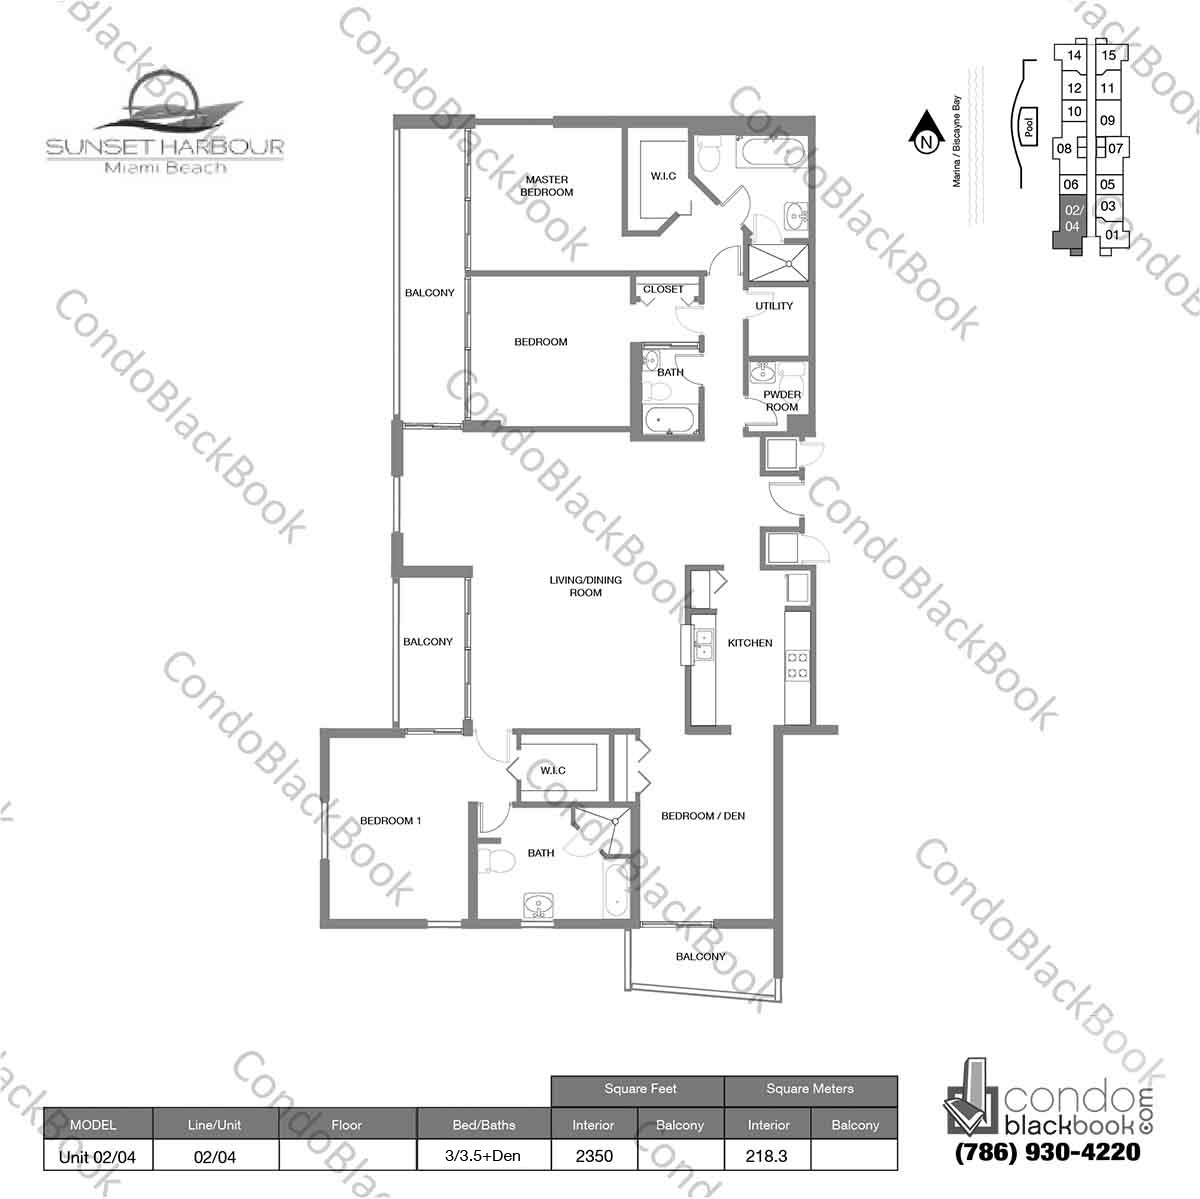 Floor plan for Sunset Harbour South Beach Miami Beach, model Unit 02/04, line 02/04S, 4 / 4 bedrooms, 2246 sq ft